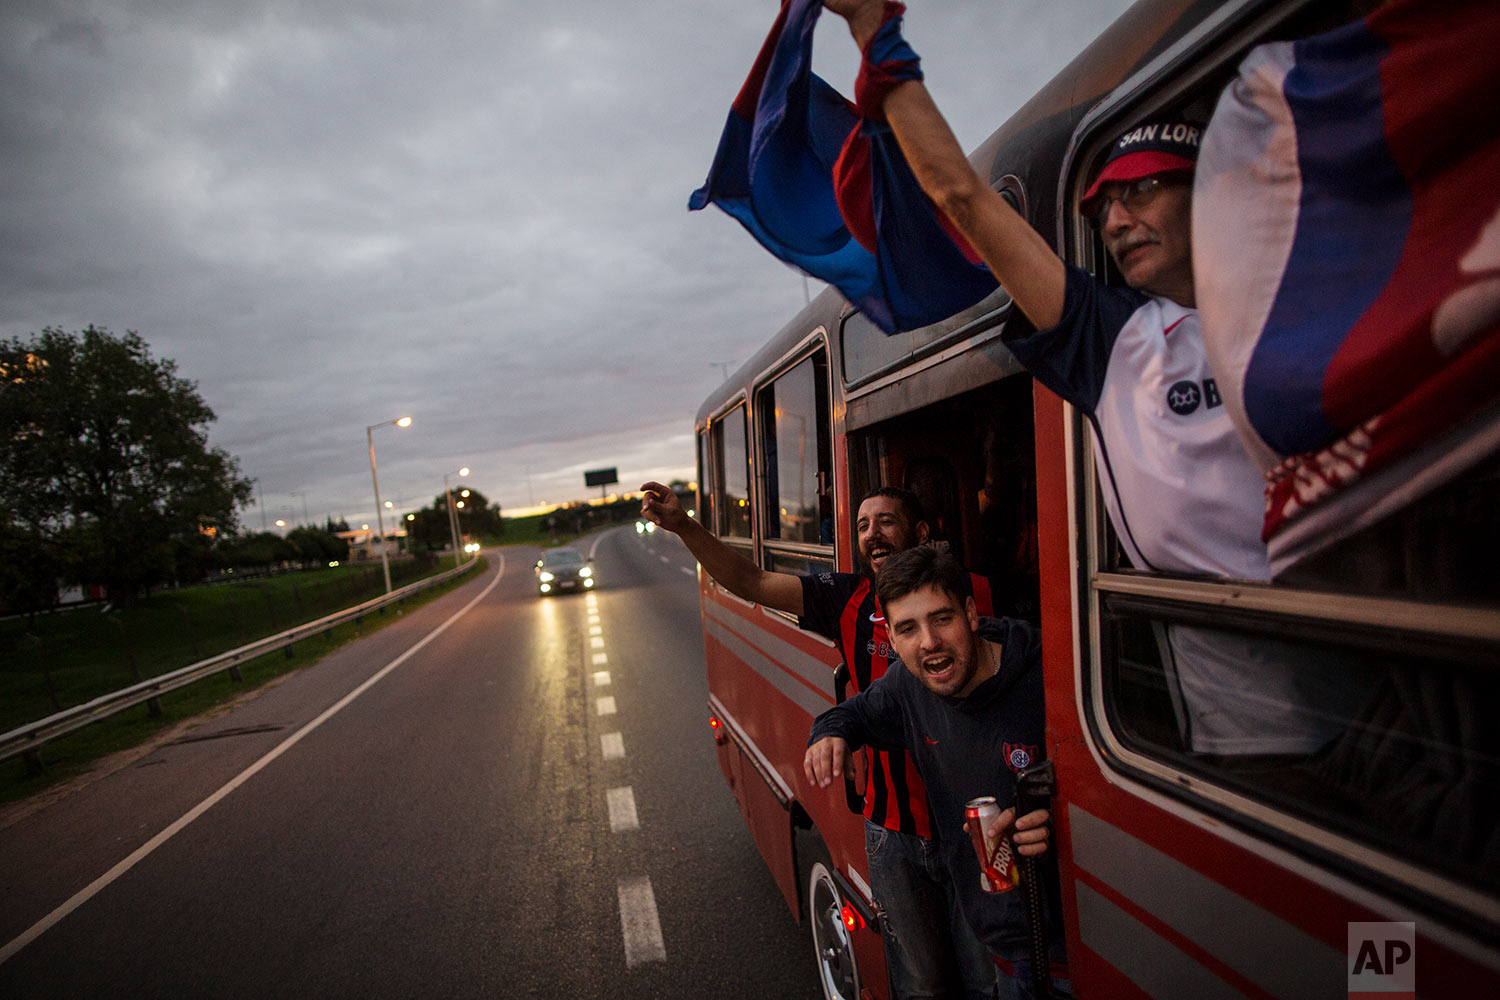 """In this April 21, 2018 photo, San Lorenzo soccer fans from the group """"Cuervos del Oeste,"""" a fan club from the outskirts of the city, sing songs and wave flags from their rental bus taking them to their team's home stadium for a game against Chacarita in Buenos Aires, Argentina. (AP Photo/Rodrigo Abd)"""